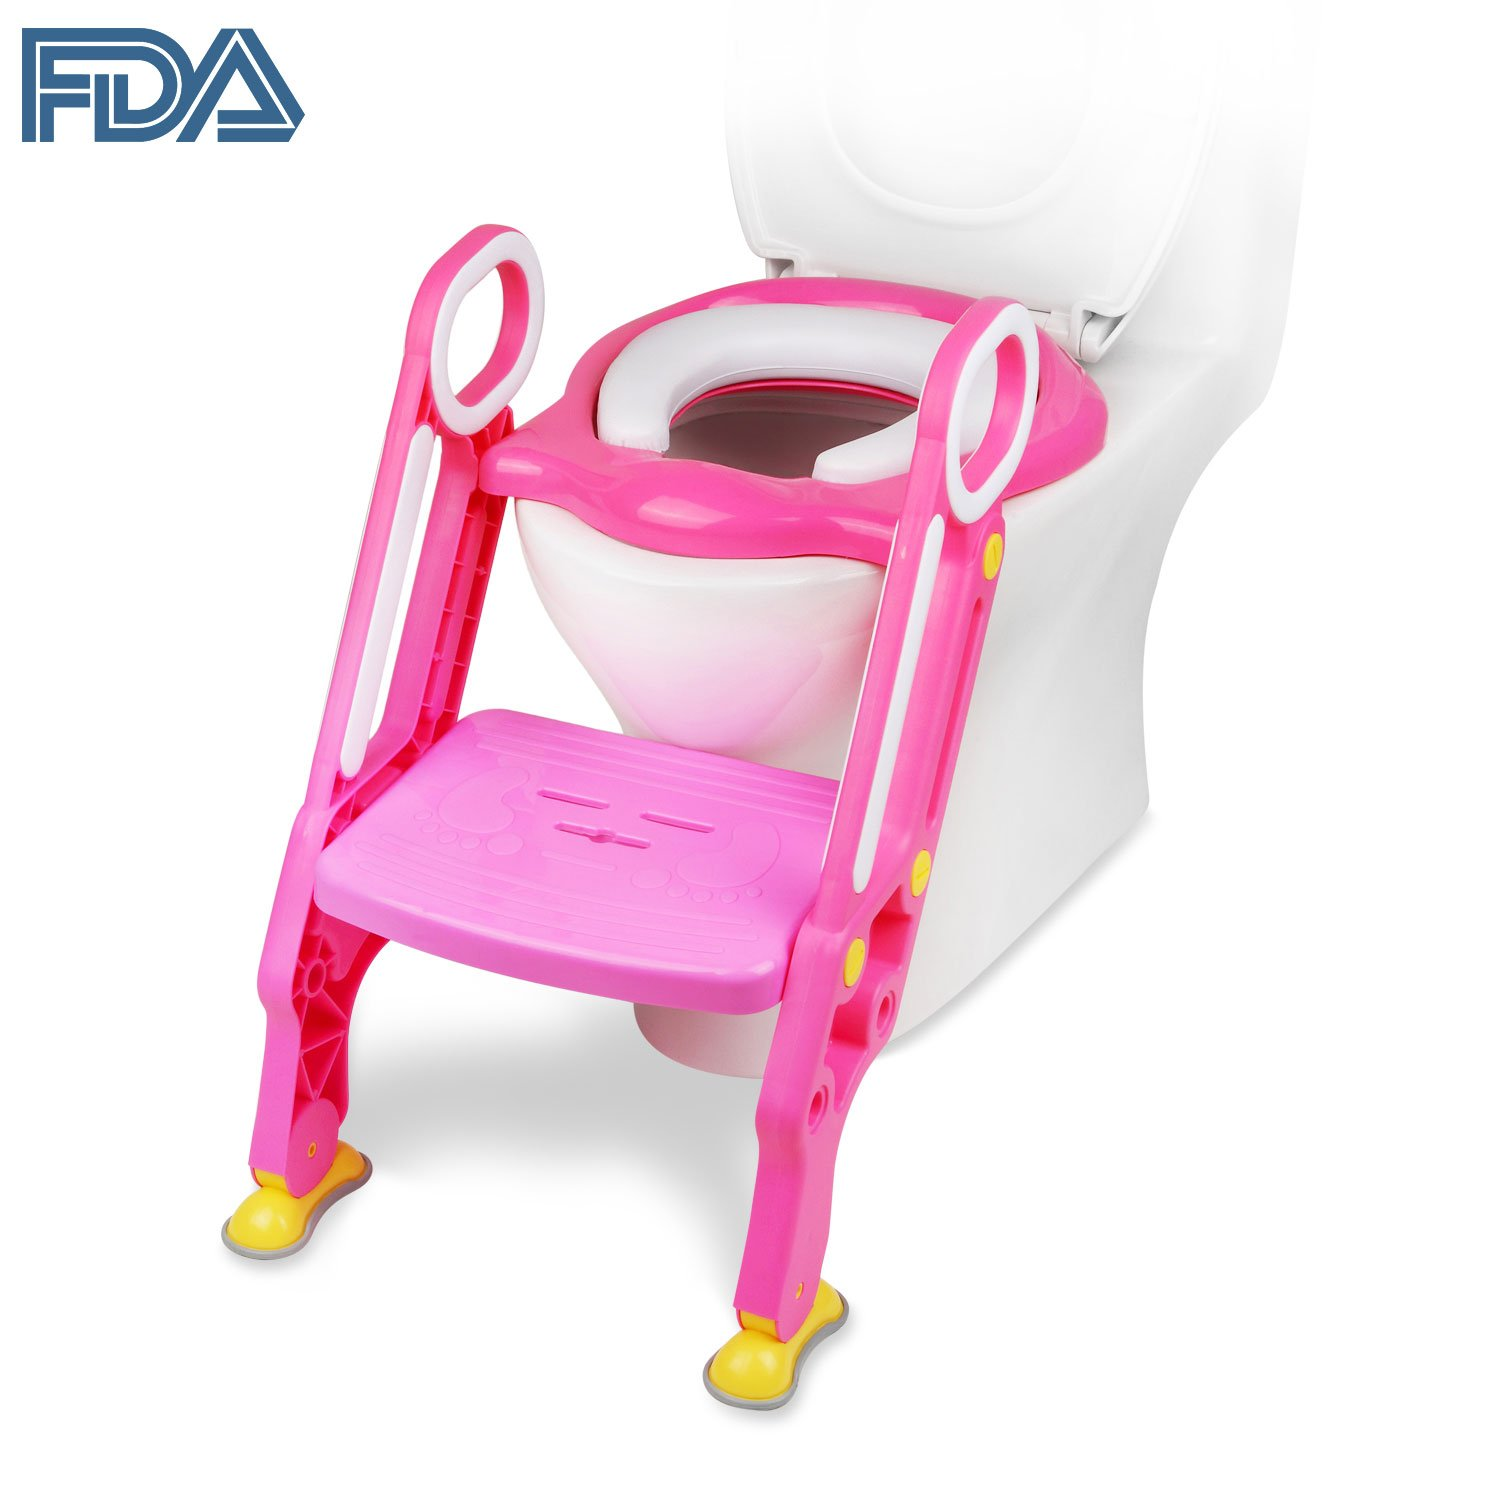 [FDA Certified] Ostrich Toilet Step Trainer Ladder for Kid and Baby, Children's Toilet Seat Chair, Toddlers Toilet Training Step Stool for Girl and Boy (Pink) by Ostrich